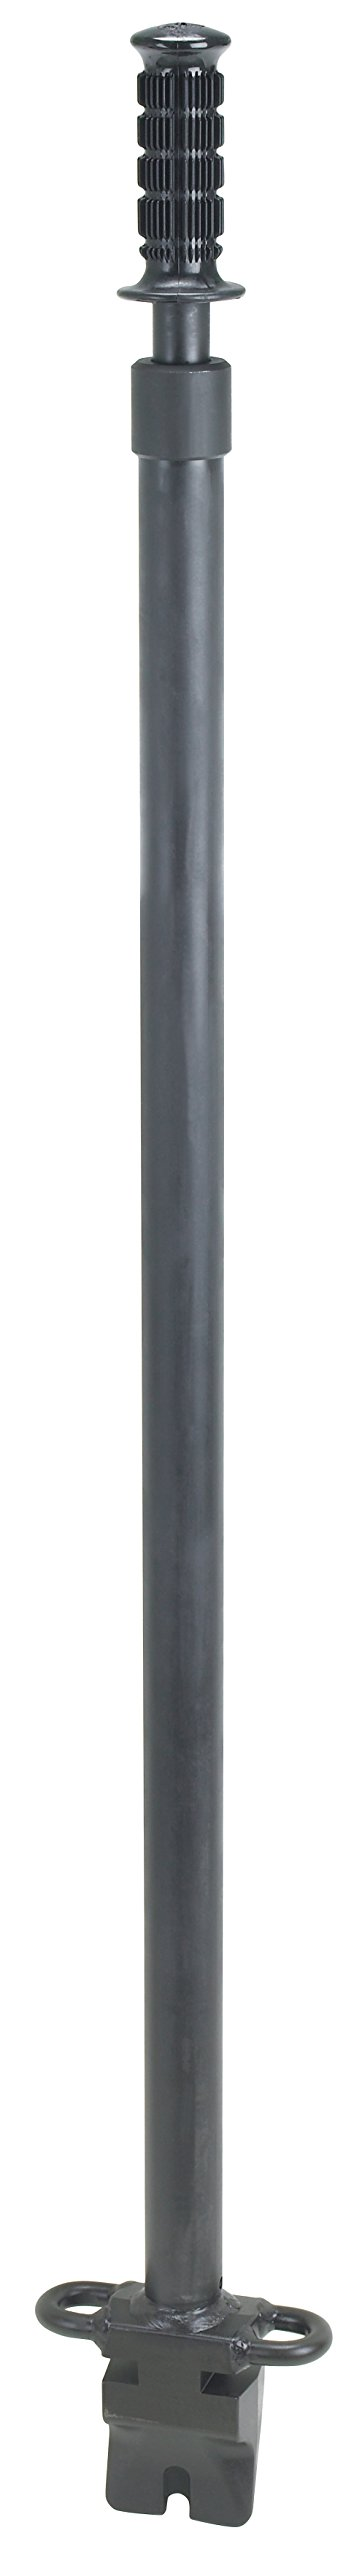 OTC Tools 5727 Sliding Bead Breaker